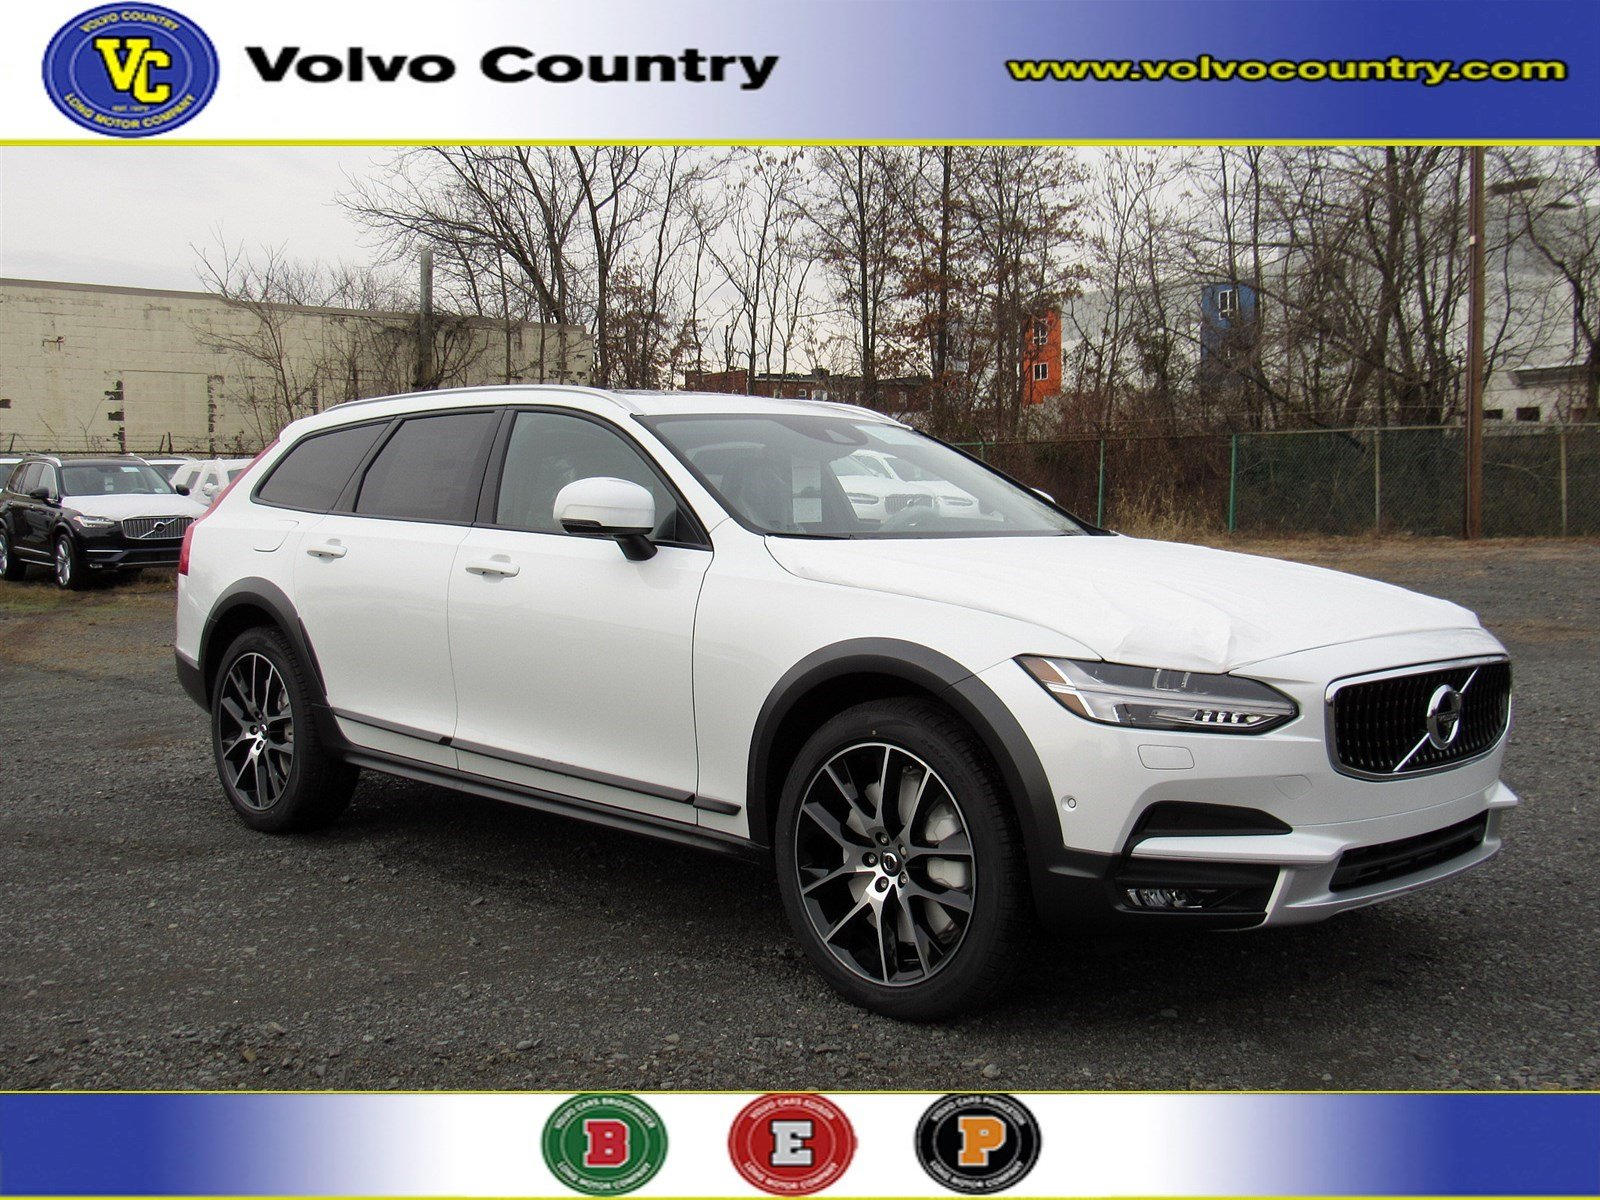 The 2018 Volvo V90 Cross Country Is New Model Research In Lawrenceville Nj Cars Princeton 2019 T6 Wagon